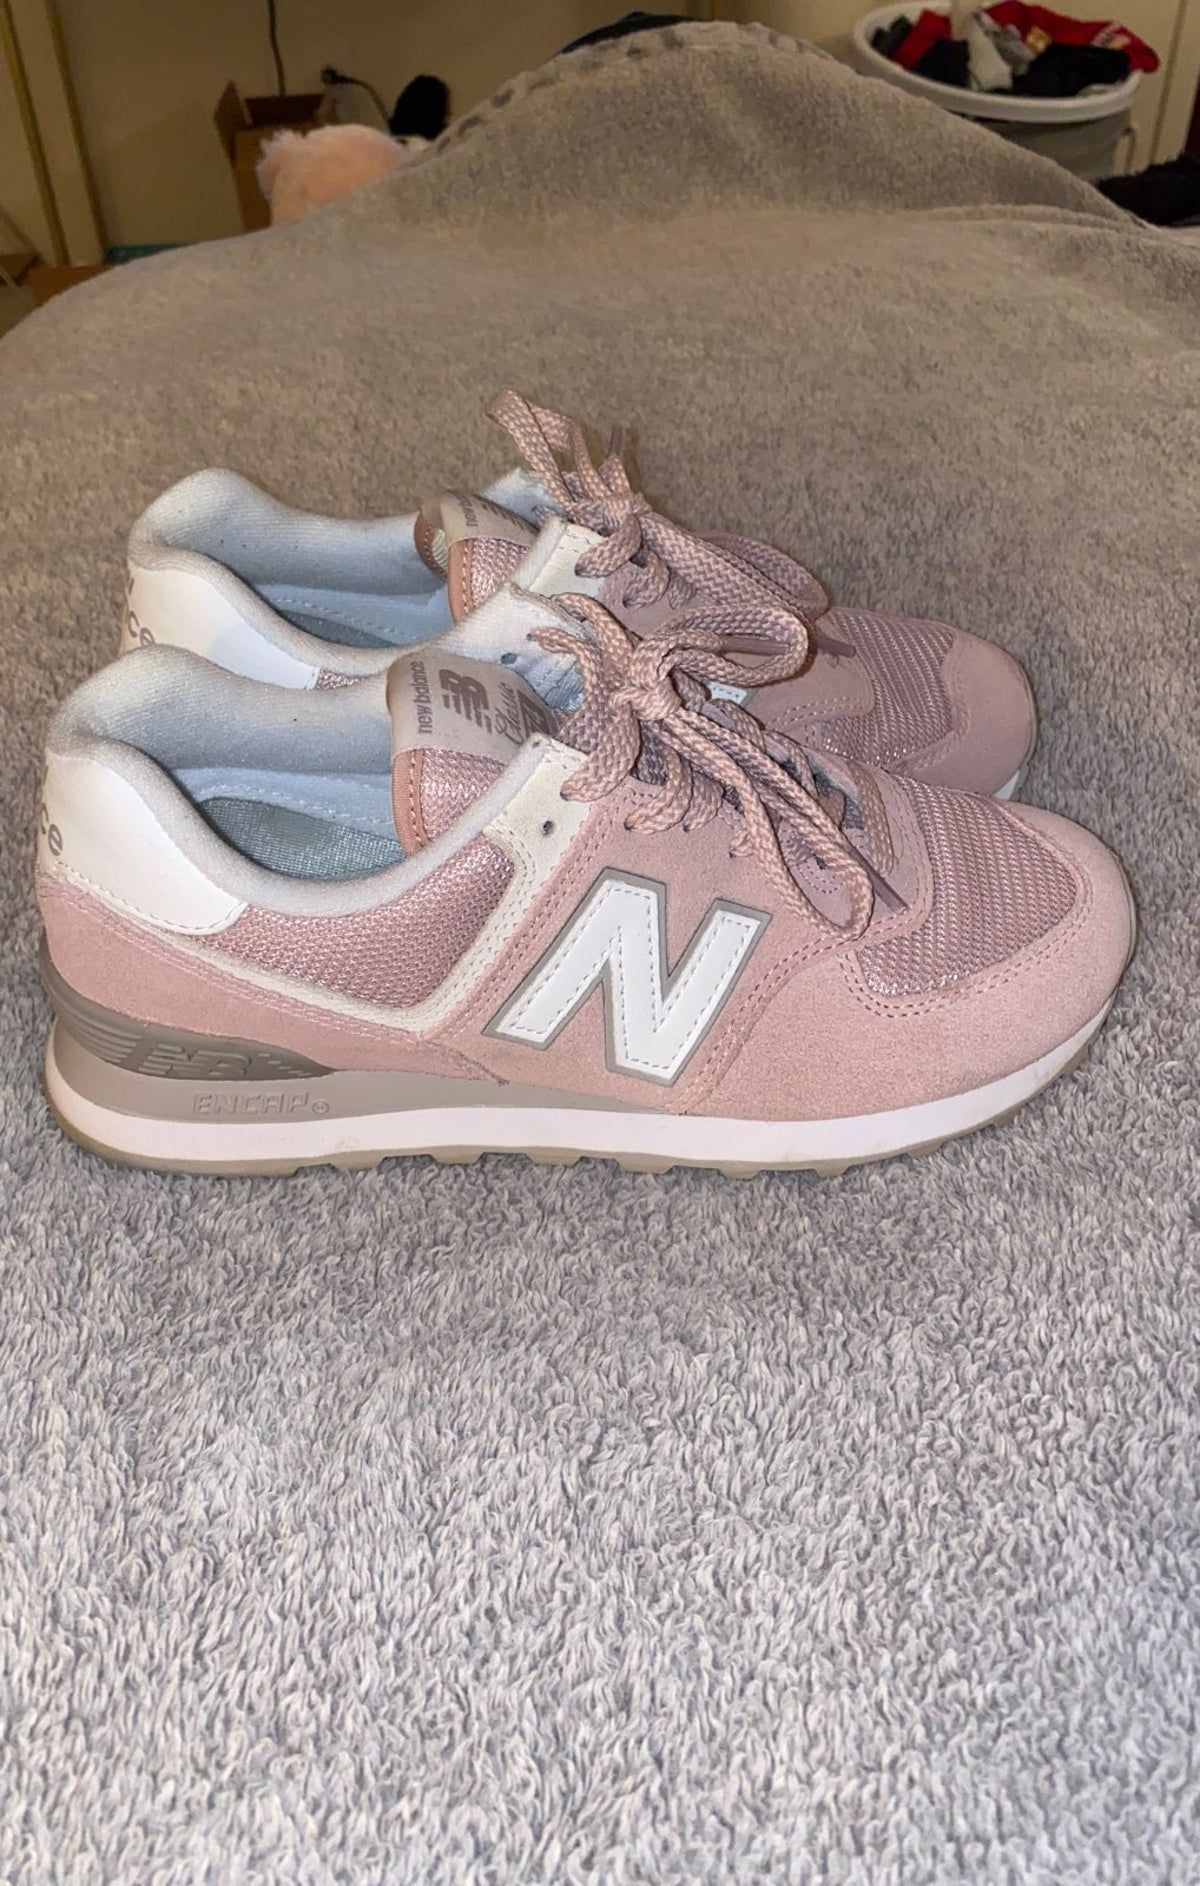 Womens New Balance 574 Classic in 2021 | New balance 574 pink, New ...